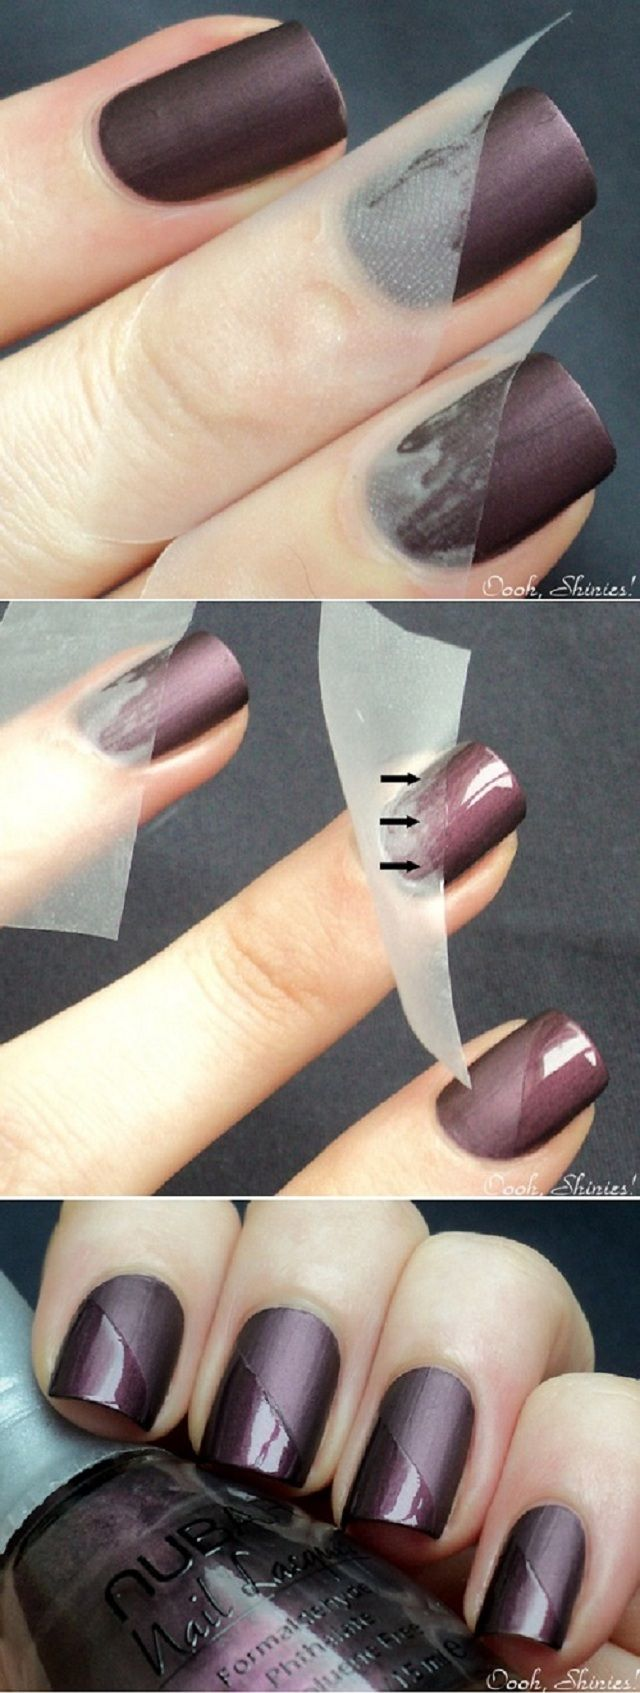 169 best Nail Care & Organization~ images on Pinterest | Nail ...